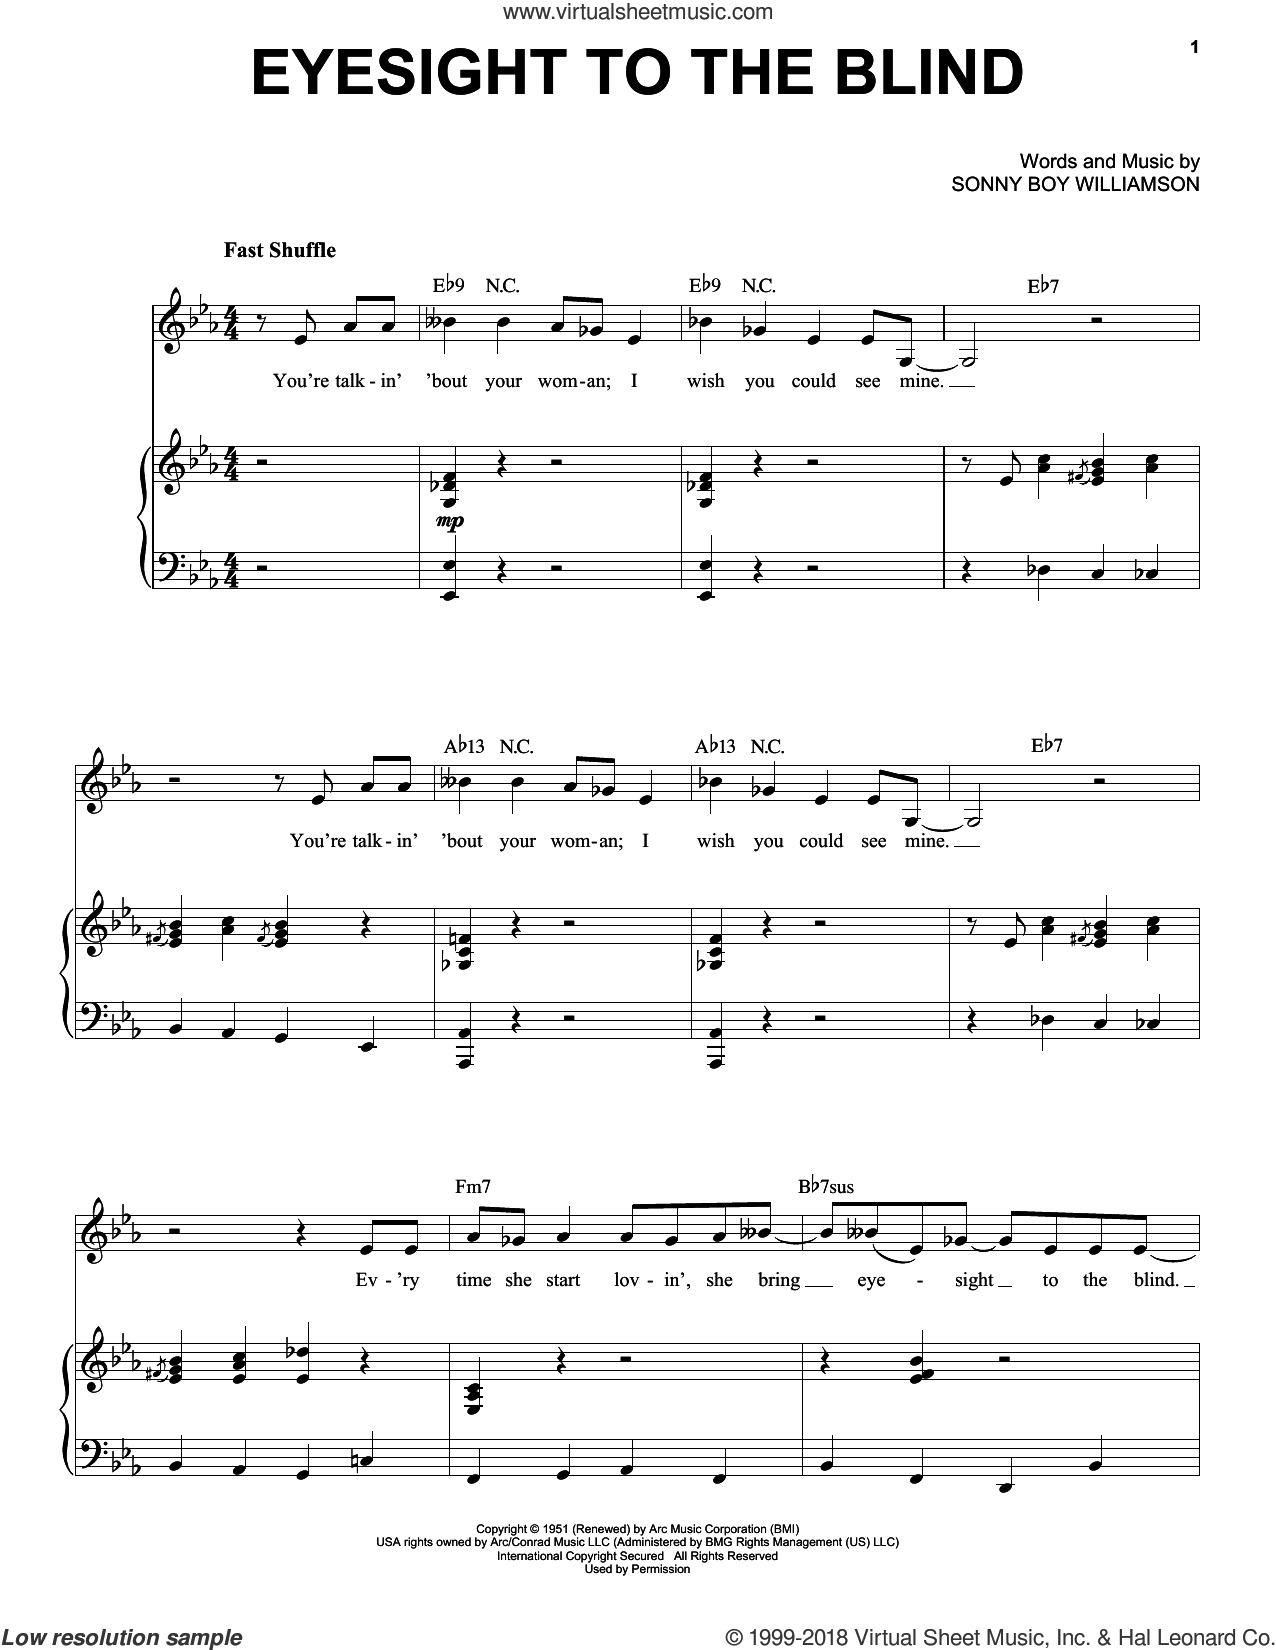 Eyesight To The Blind sheet music for voice and piano by Mose Allison and Sonny Boy Williamson, intermediate skill level